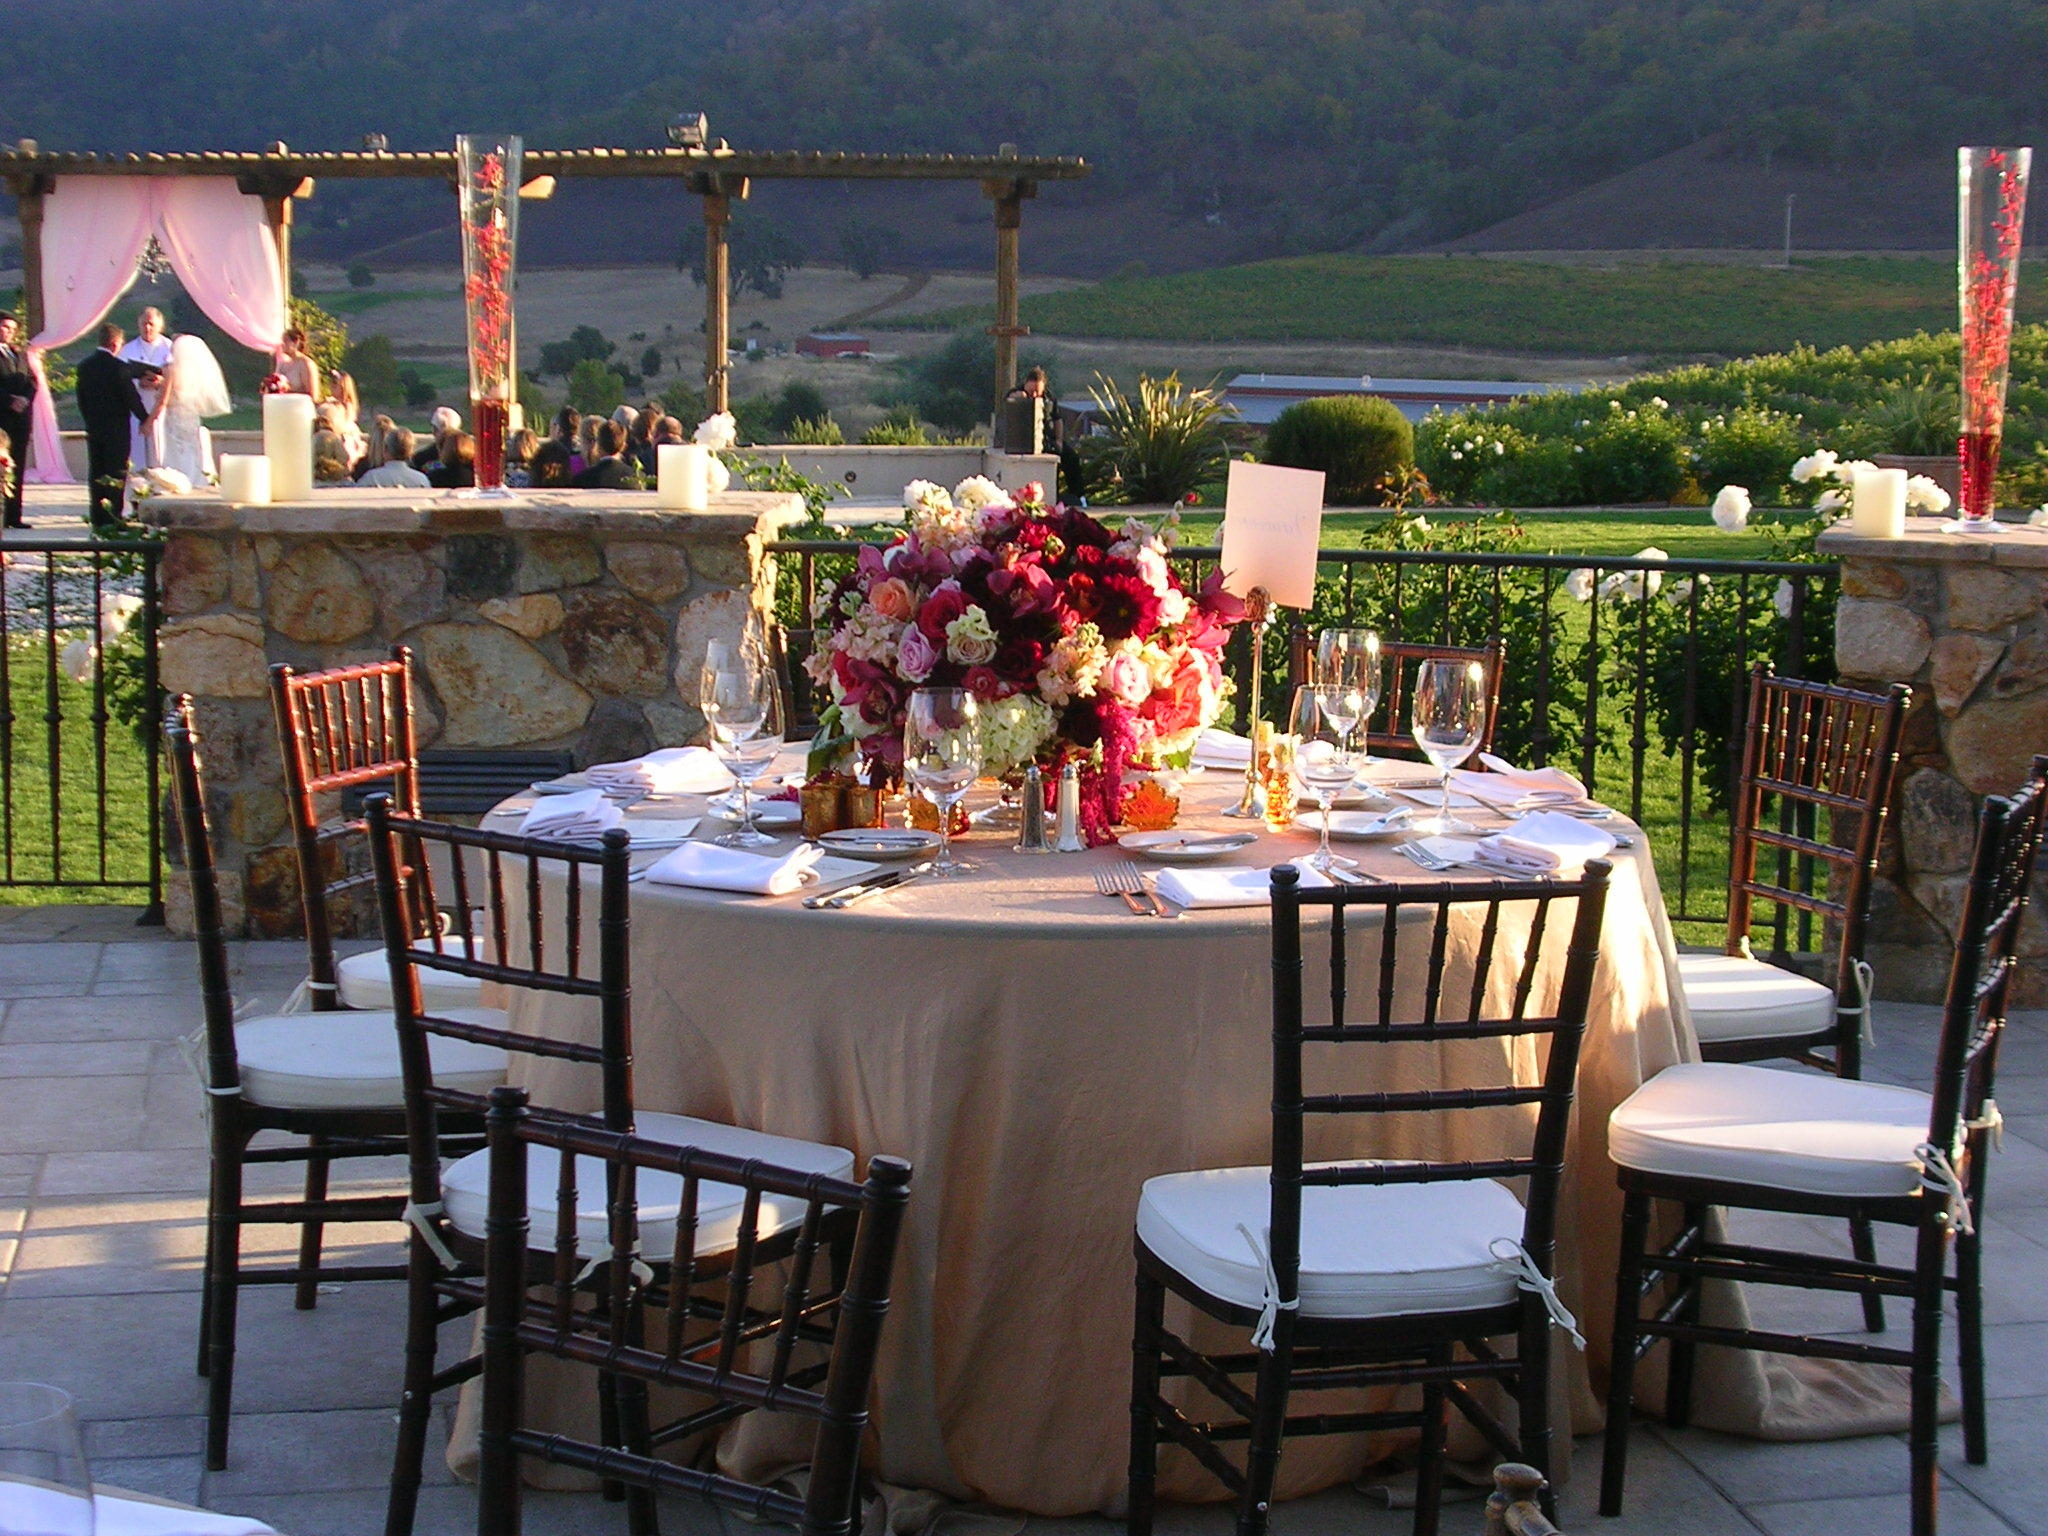 Flowers & Decor, ivory, pink, gold, Tables & Seating, Centerpiece, Chairs, Terra, Cotta, Chivari, Bordeaux